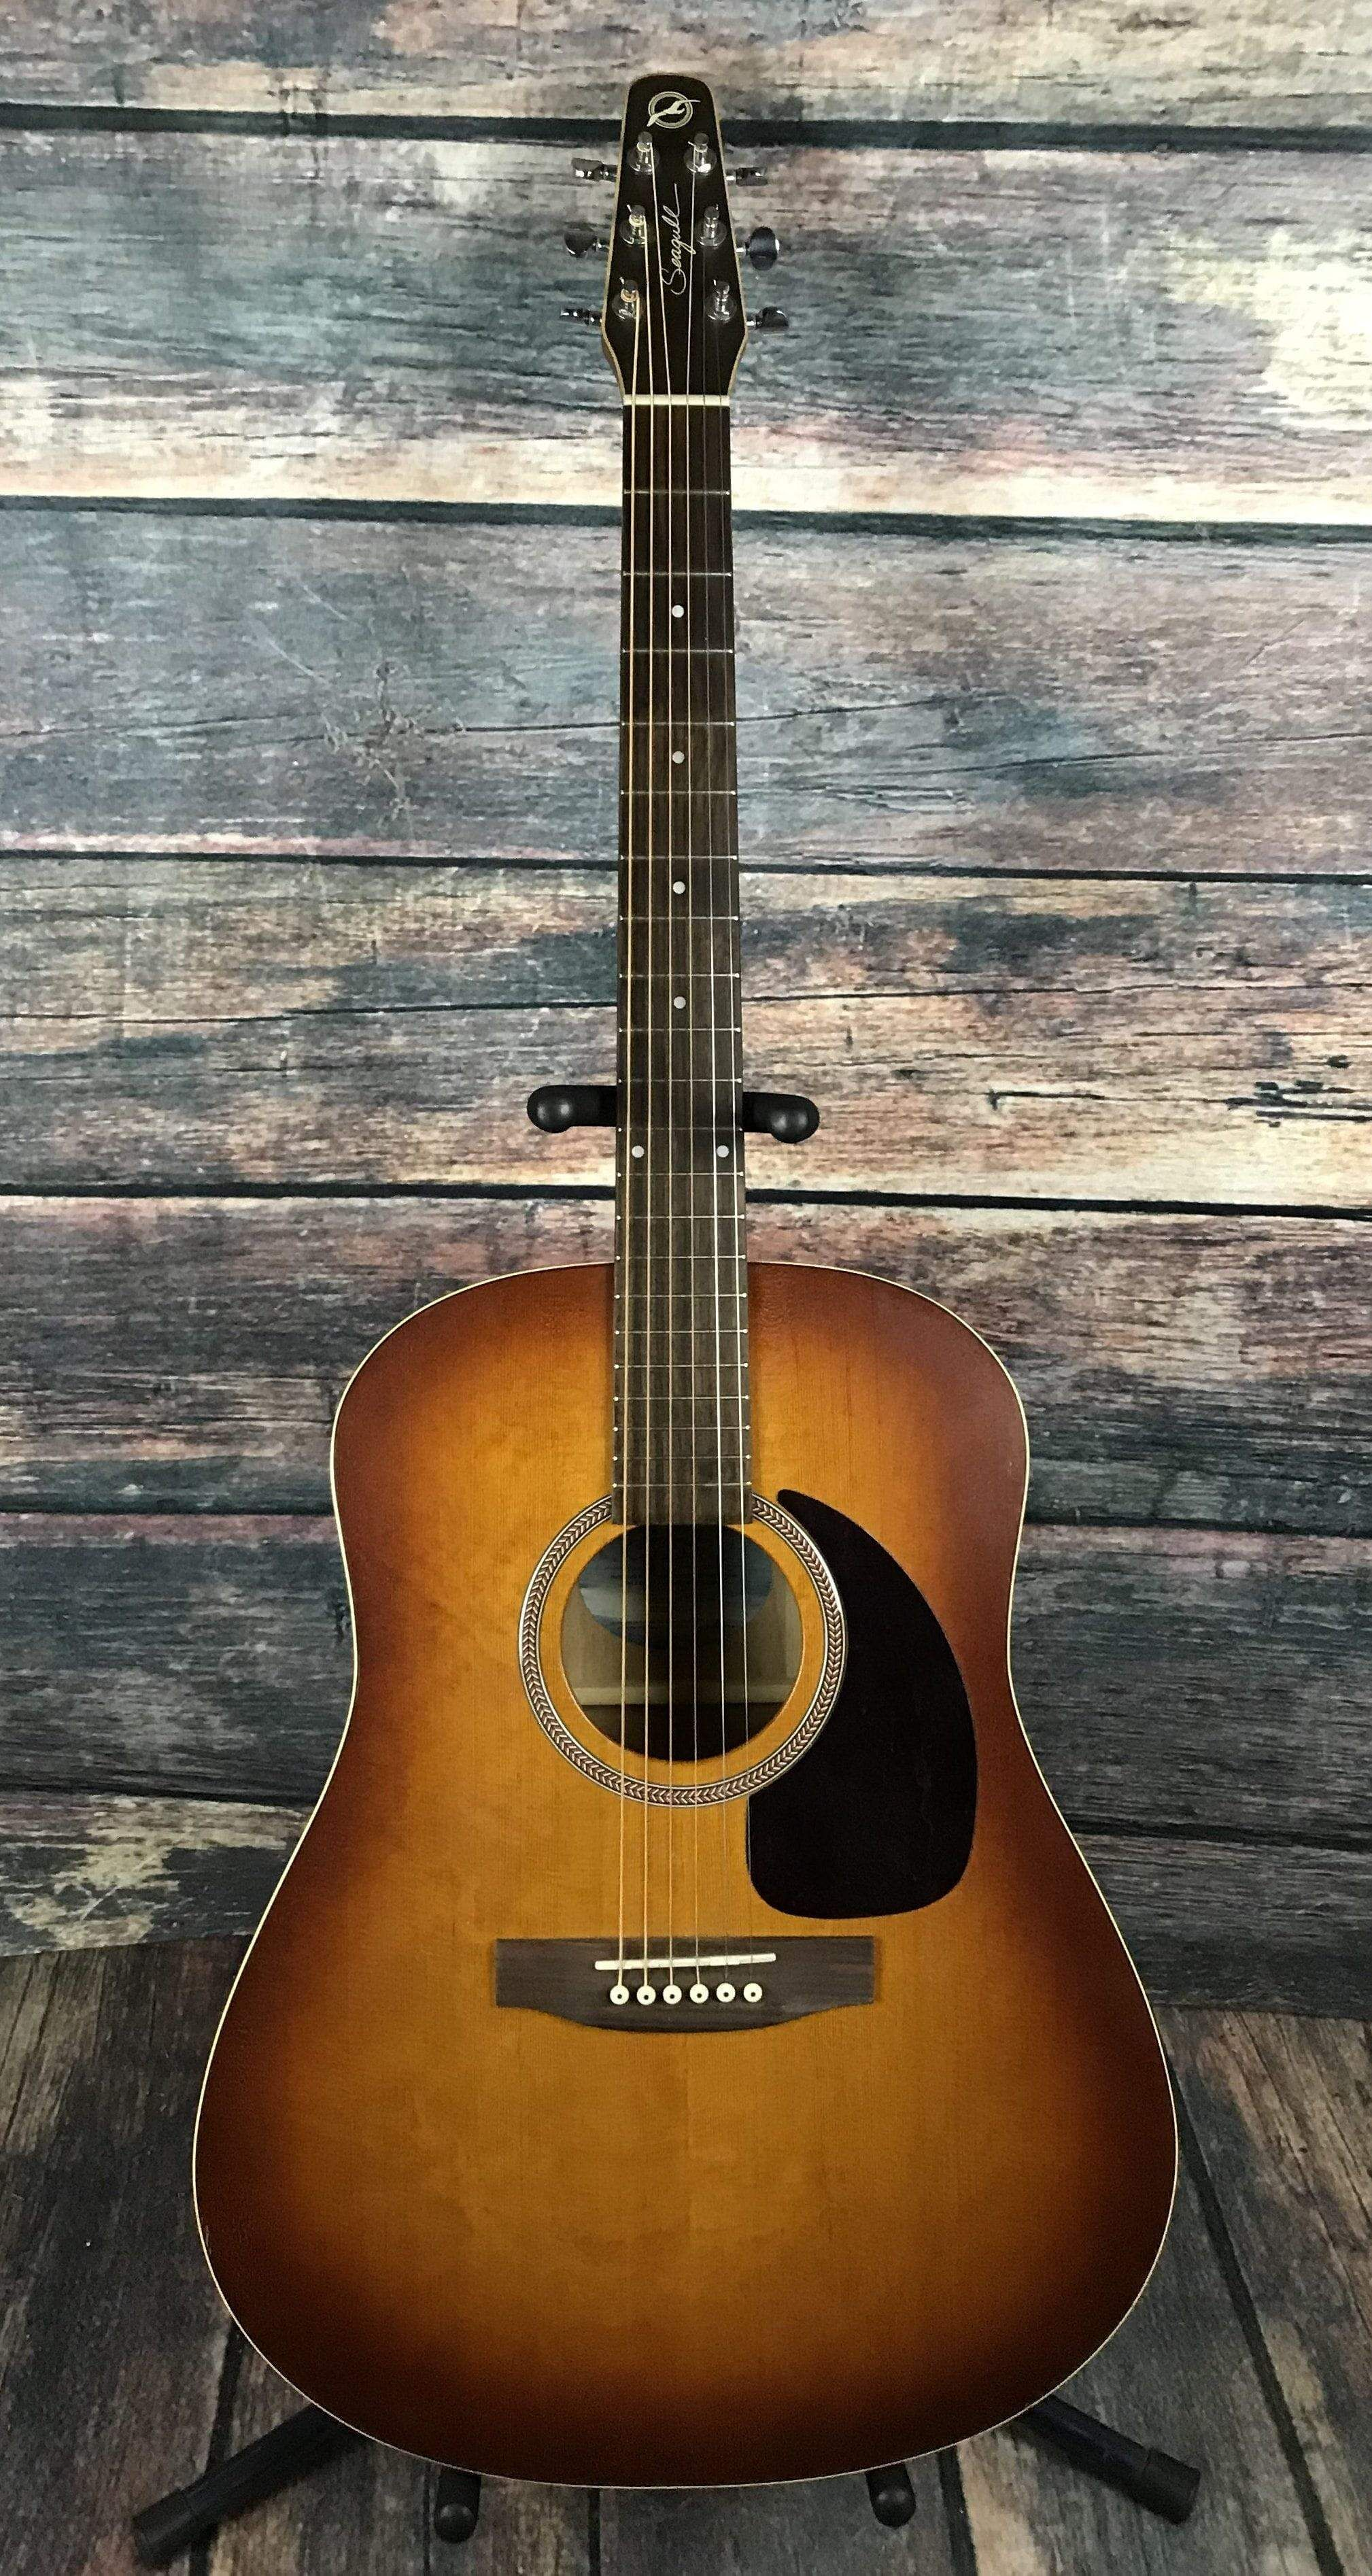 Used Seagull Entourage Rustic Acoustic Guitar With Hard Shell Case Seagull Guitars Guitar Taylor Guitars Acoustic